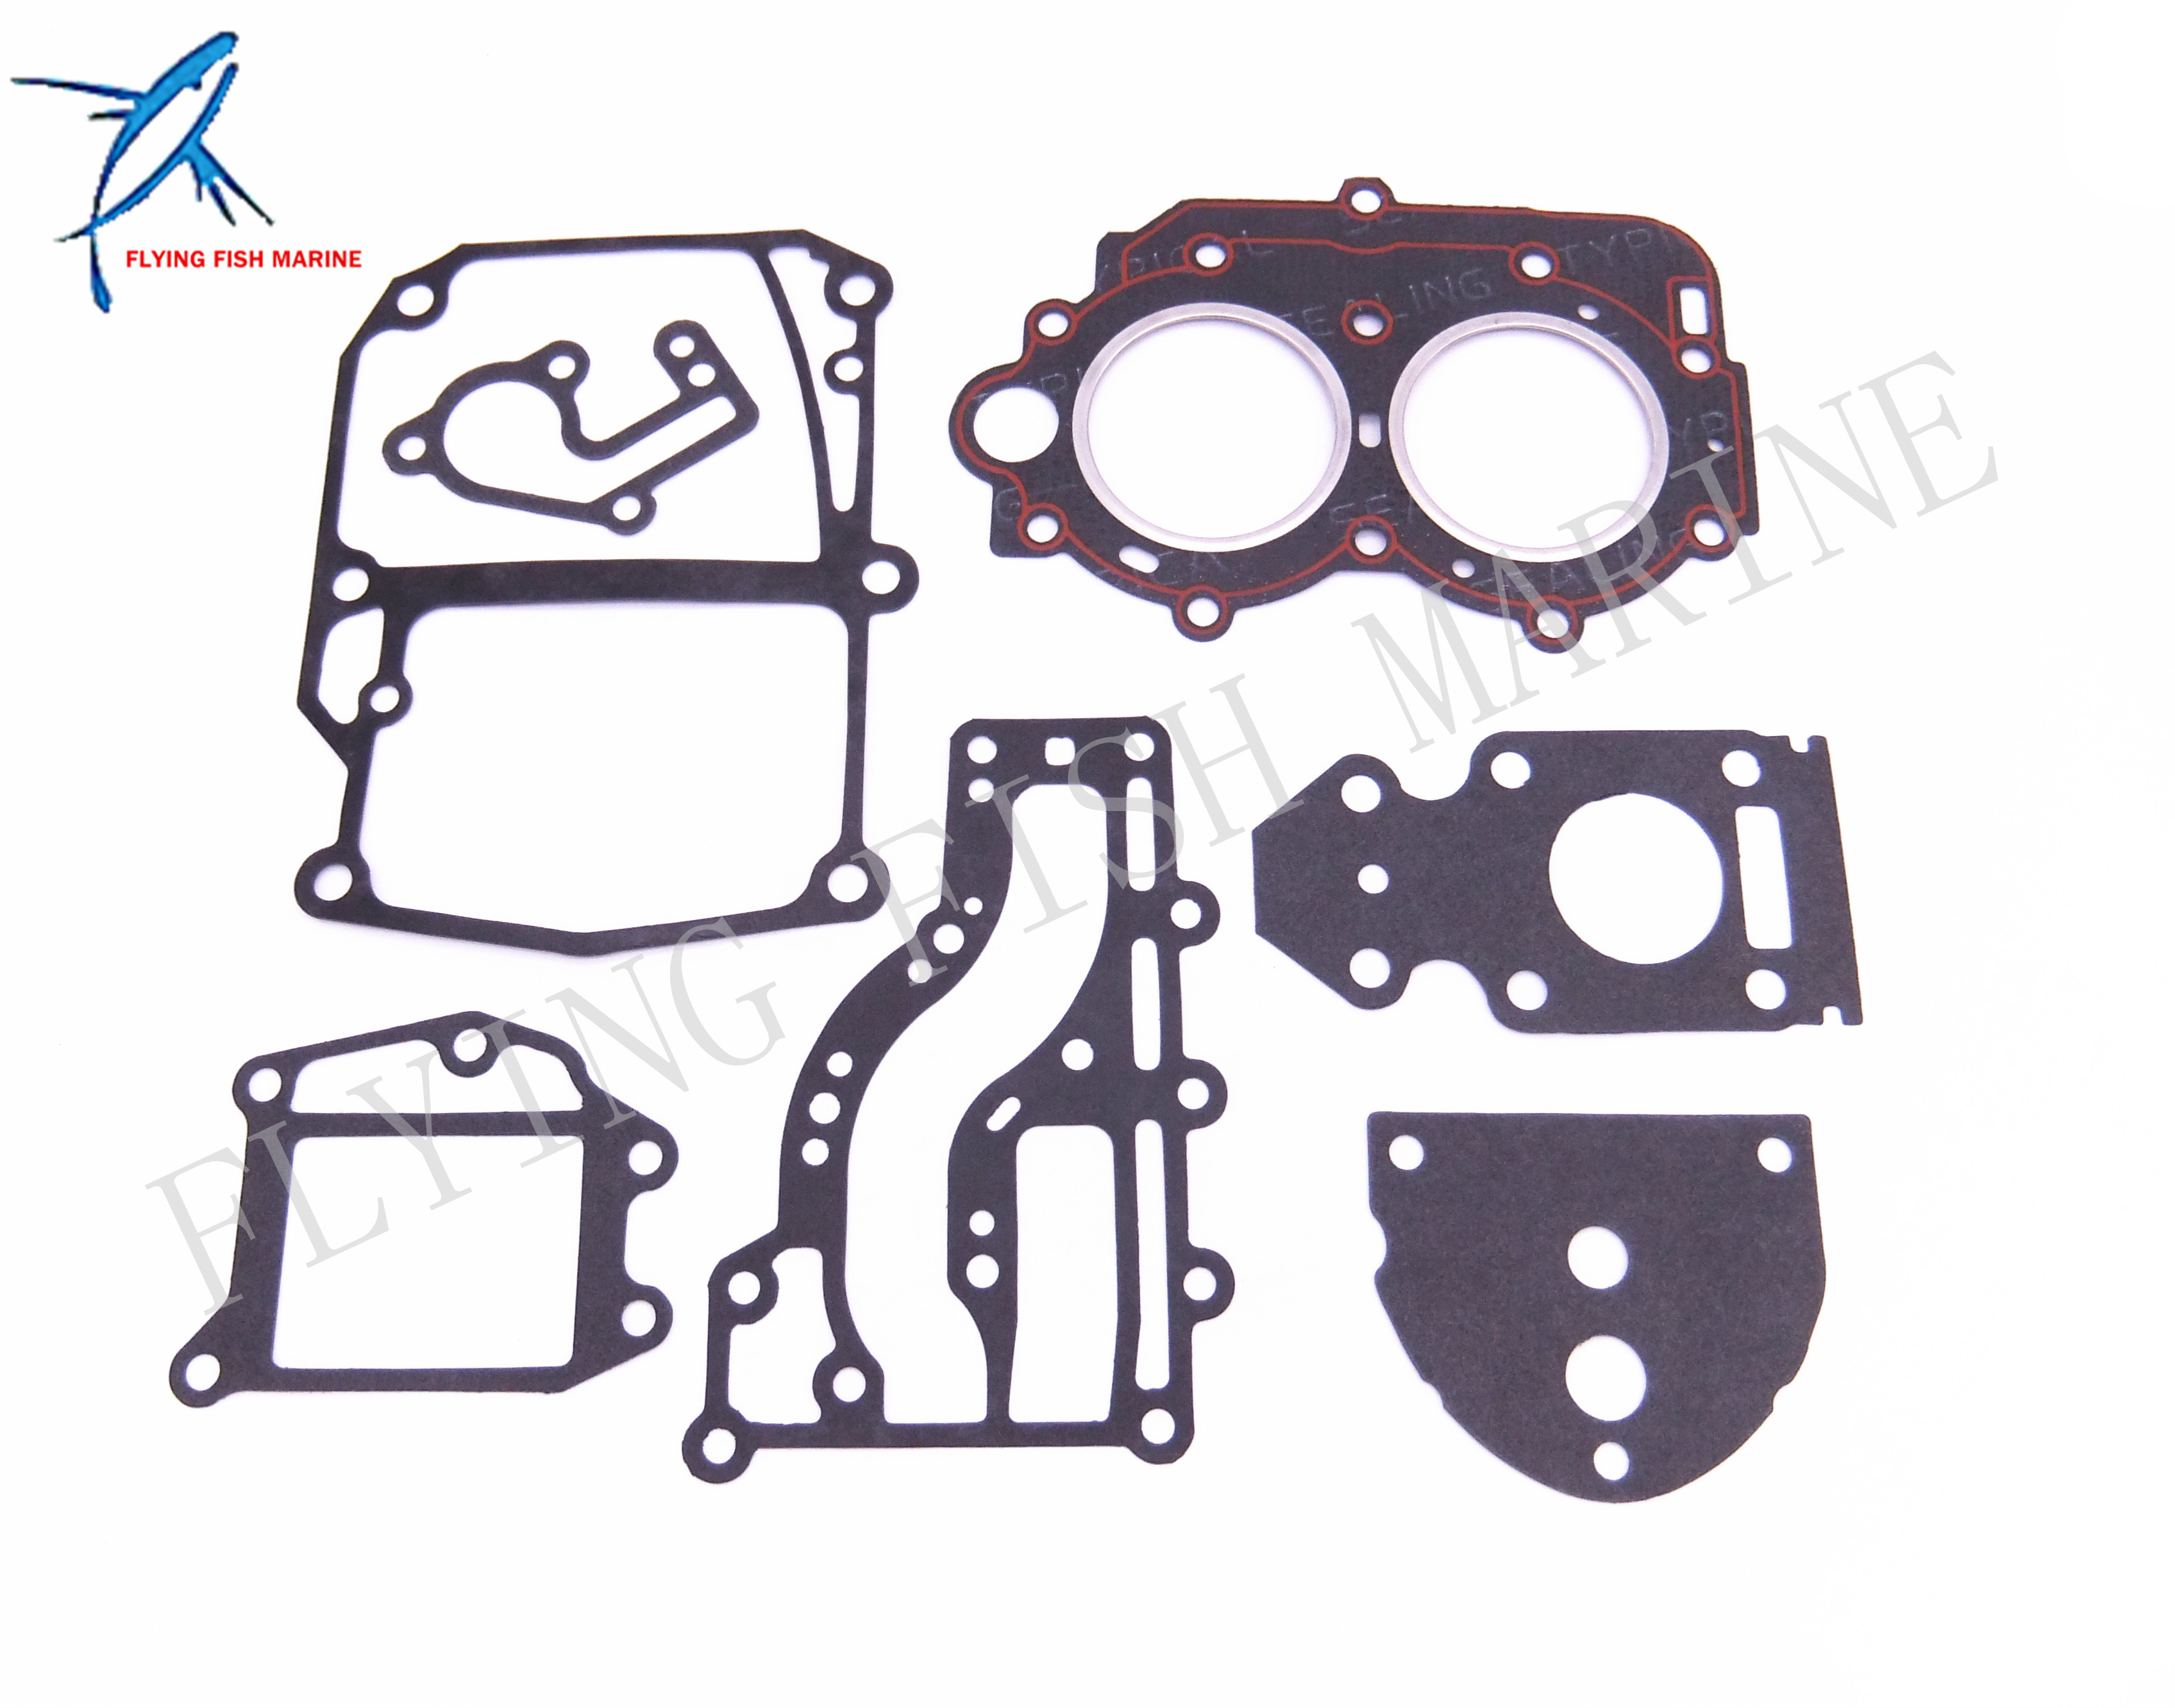 Boat Motor Complete Power Head Seal Gasket Kit for Yamaha 9.9hp 15hp 63V Outboard Engine